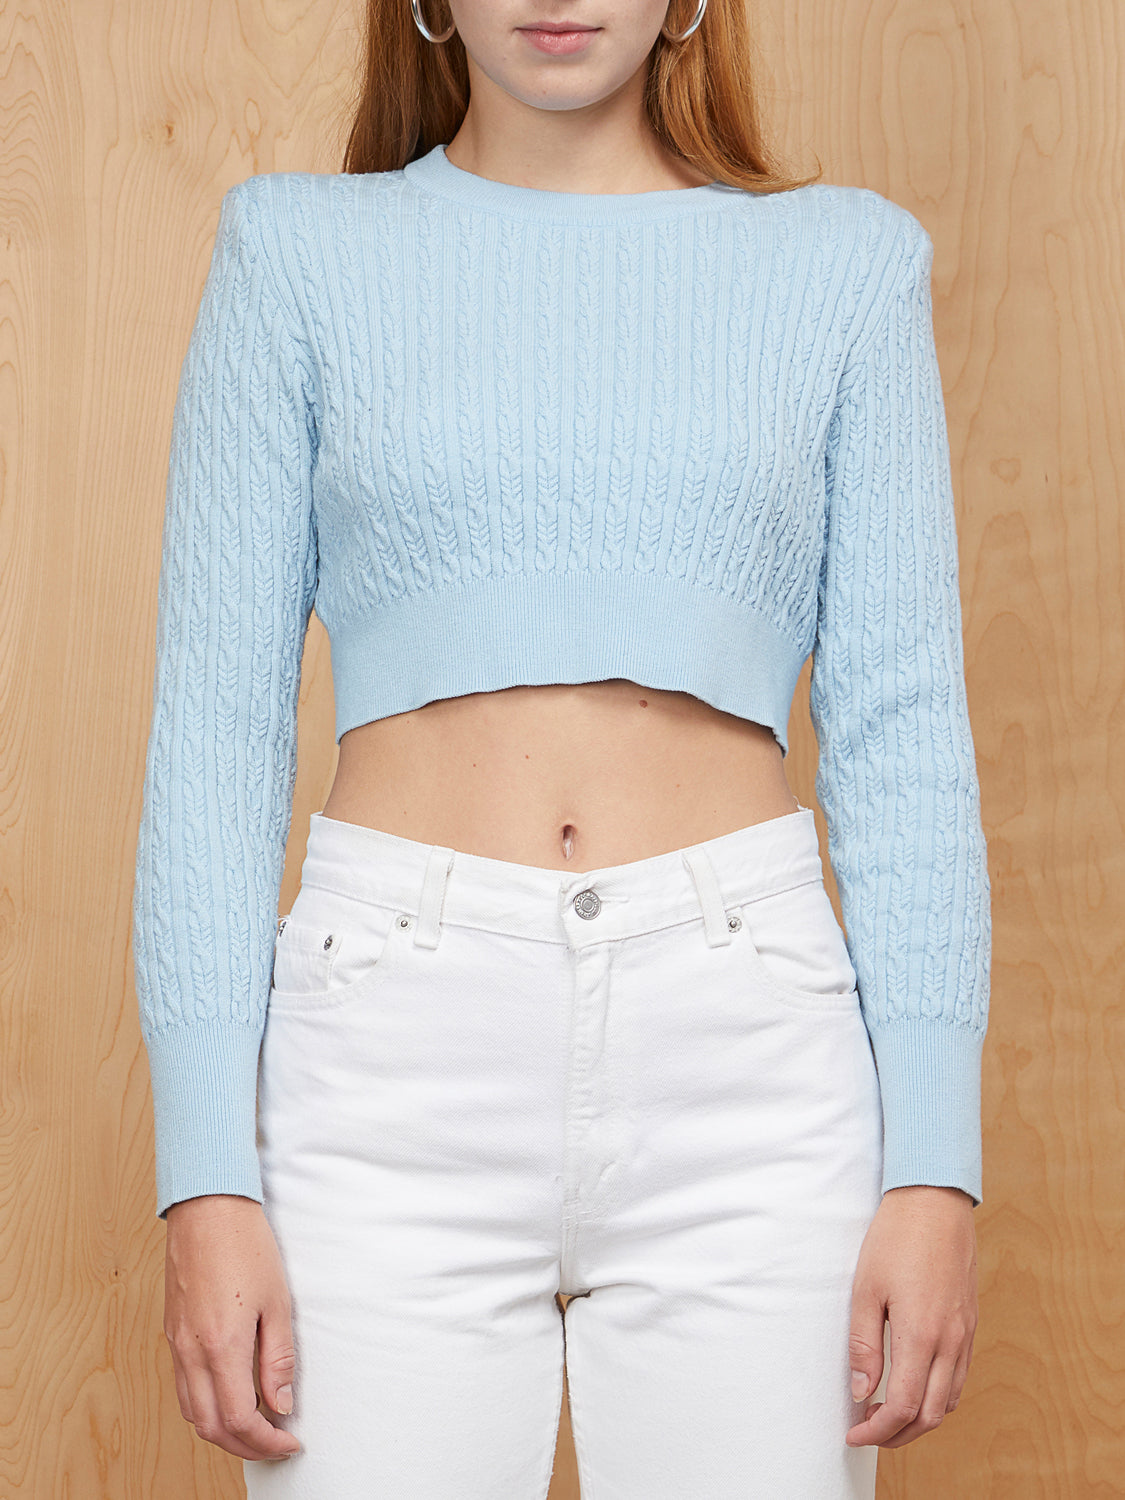 LPA Blue Cropped Sweater with Shoulder Pads